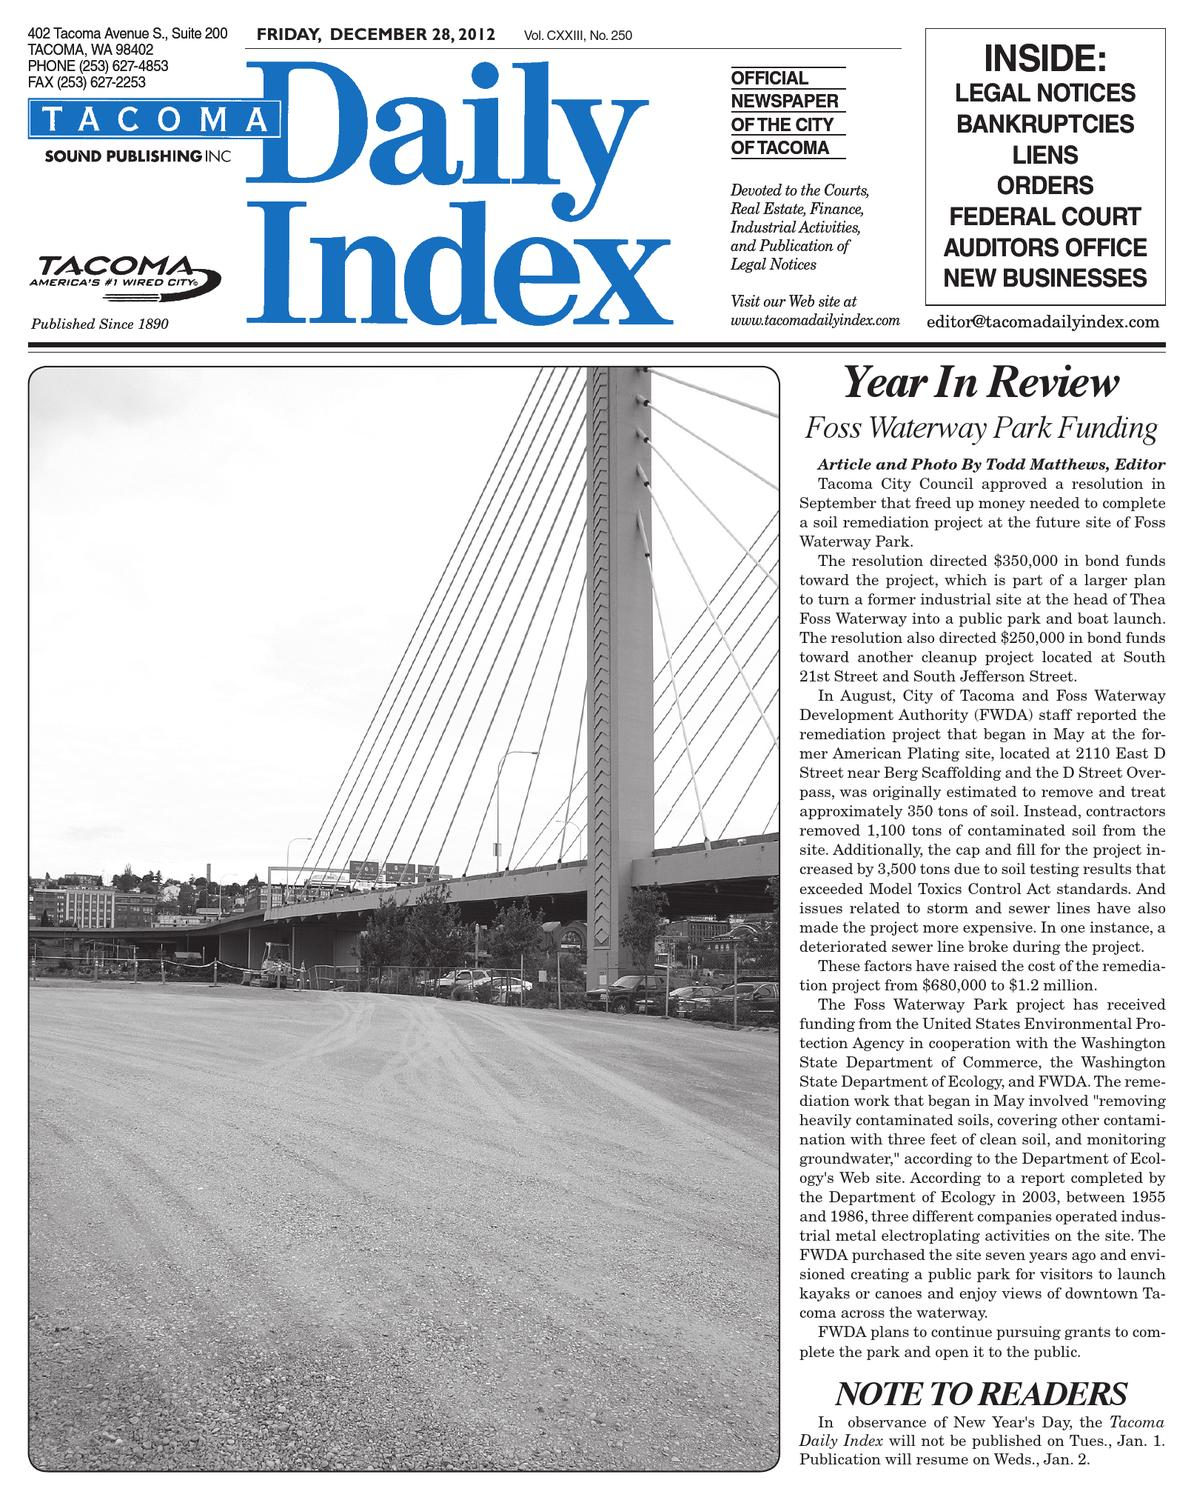 Tacoma Daily Index, December 28, 2012 by Sound Publishing - issuu